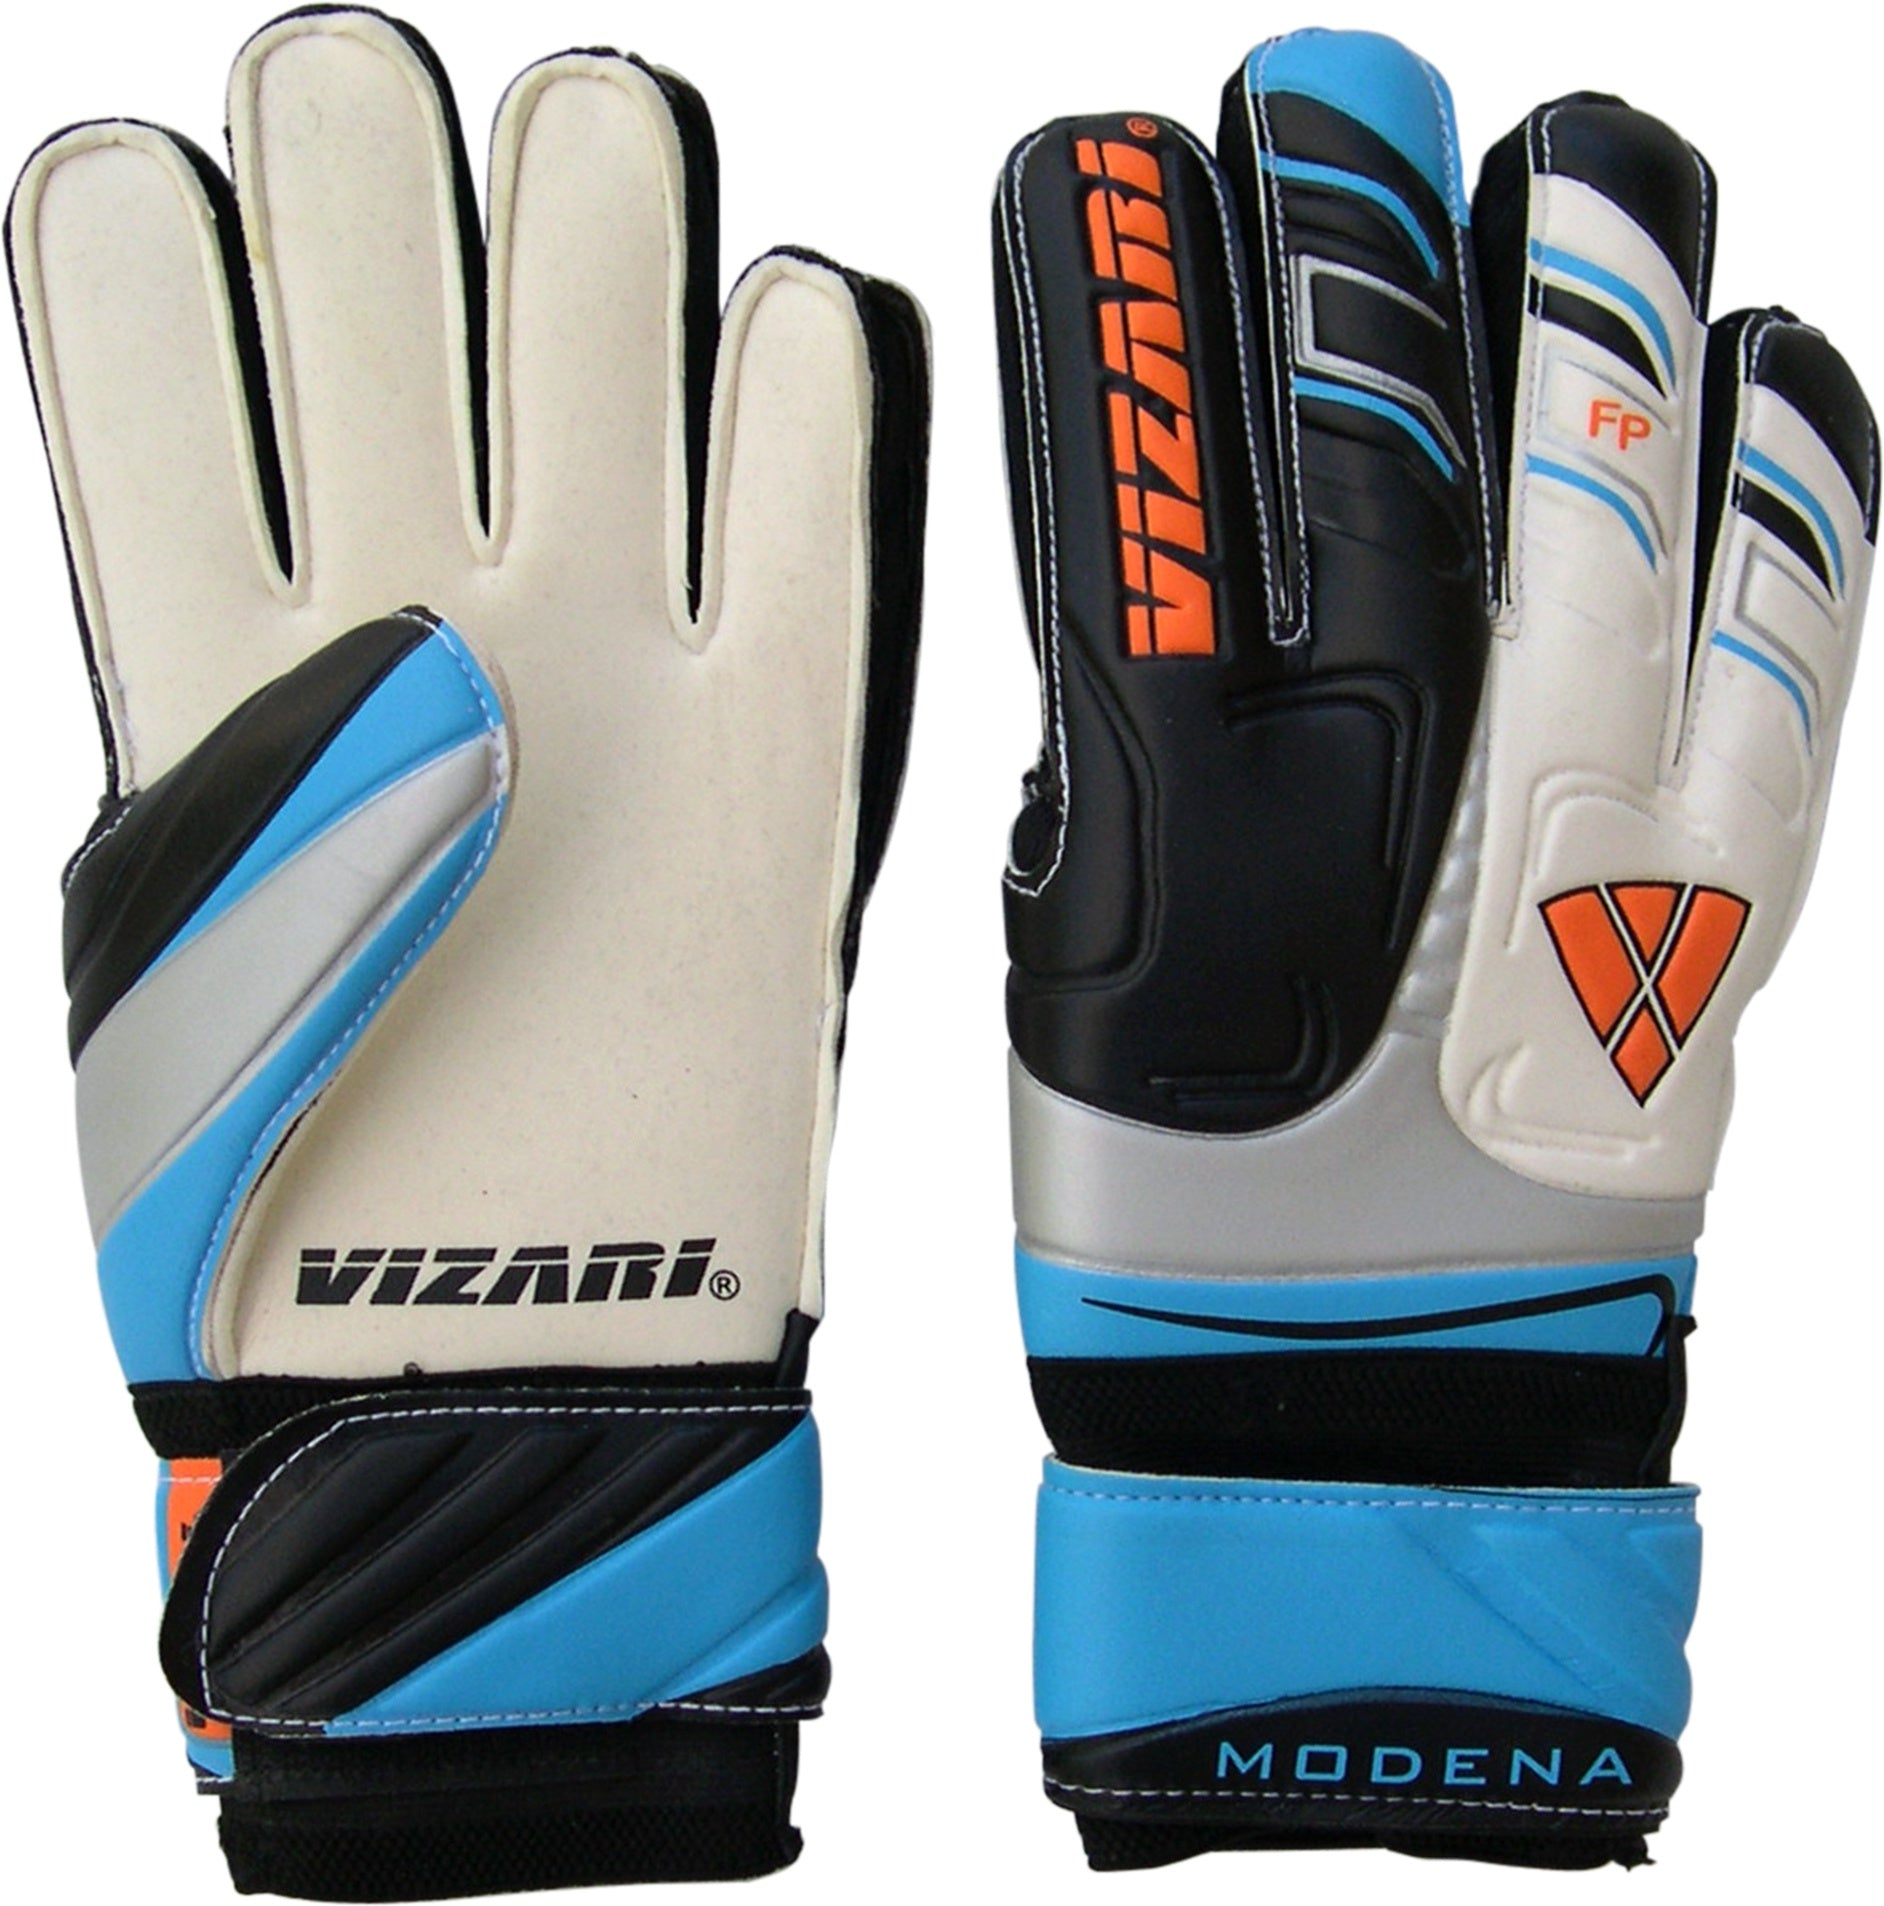 Vizari Modena Goalkeeper Gloves Black/White/Blue